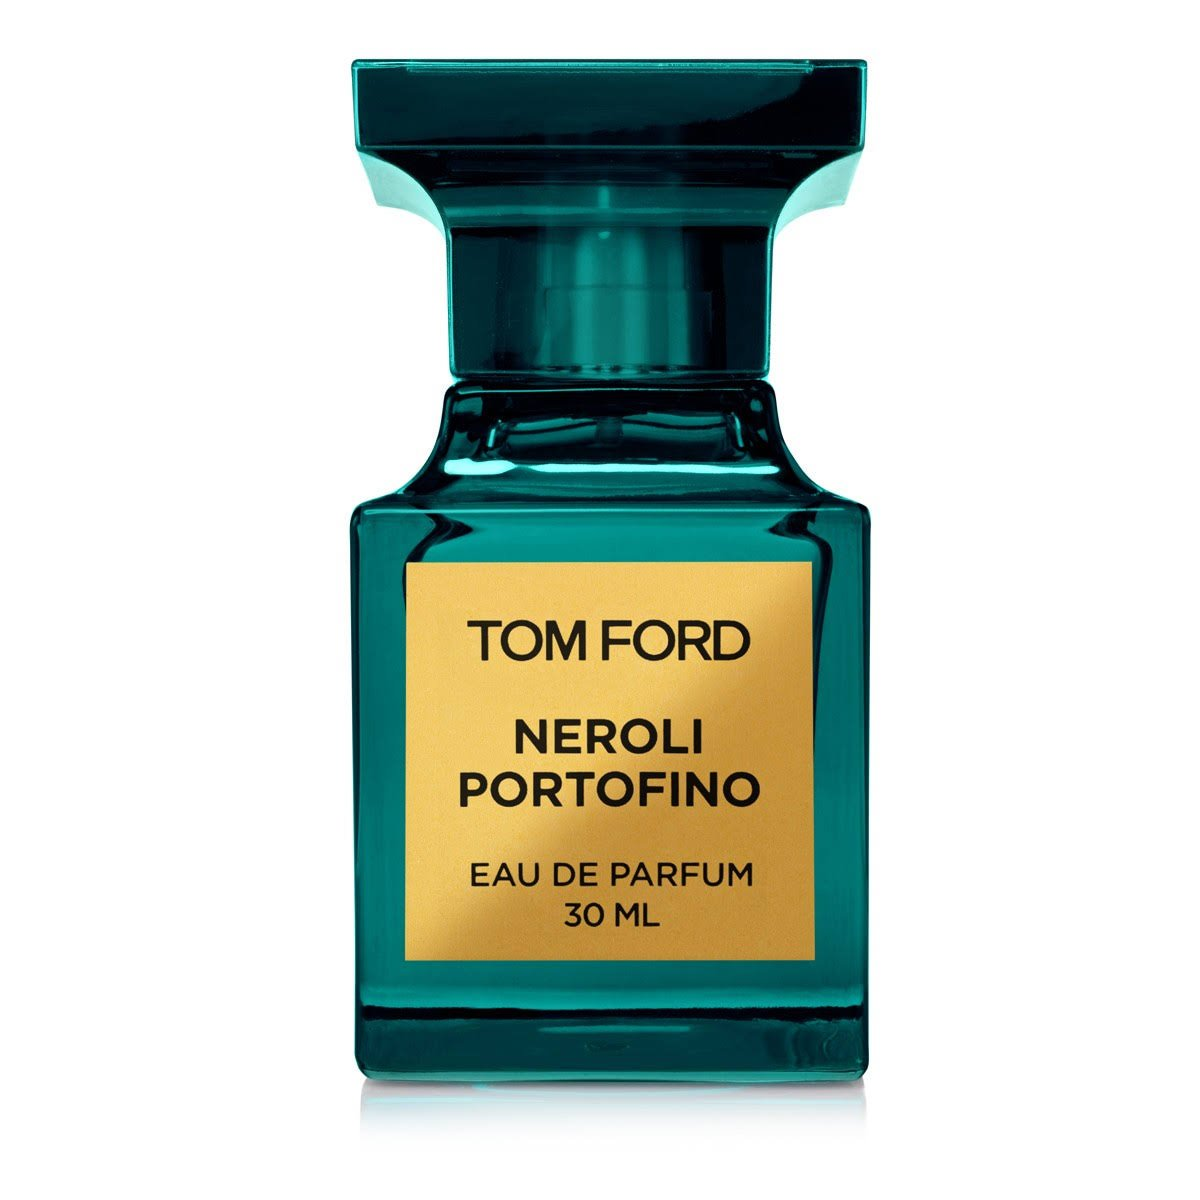 tom ford neroli portofino 1 7 oz eau de. Black Bedroom Furniture Sets. Home Design Ideas